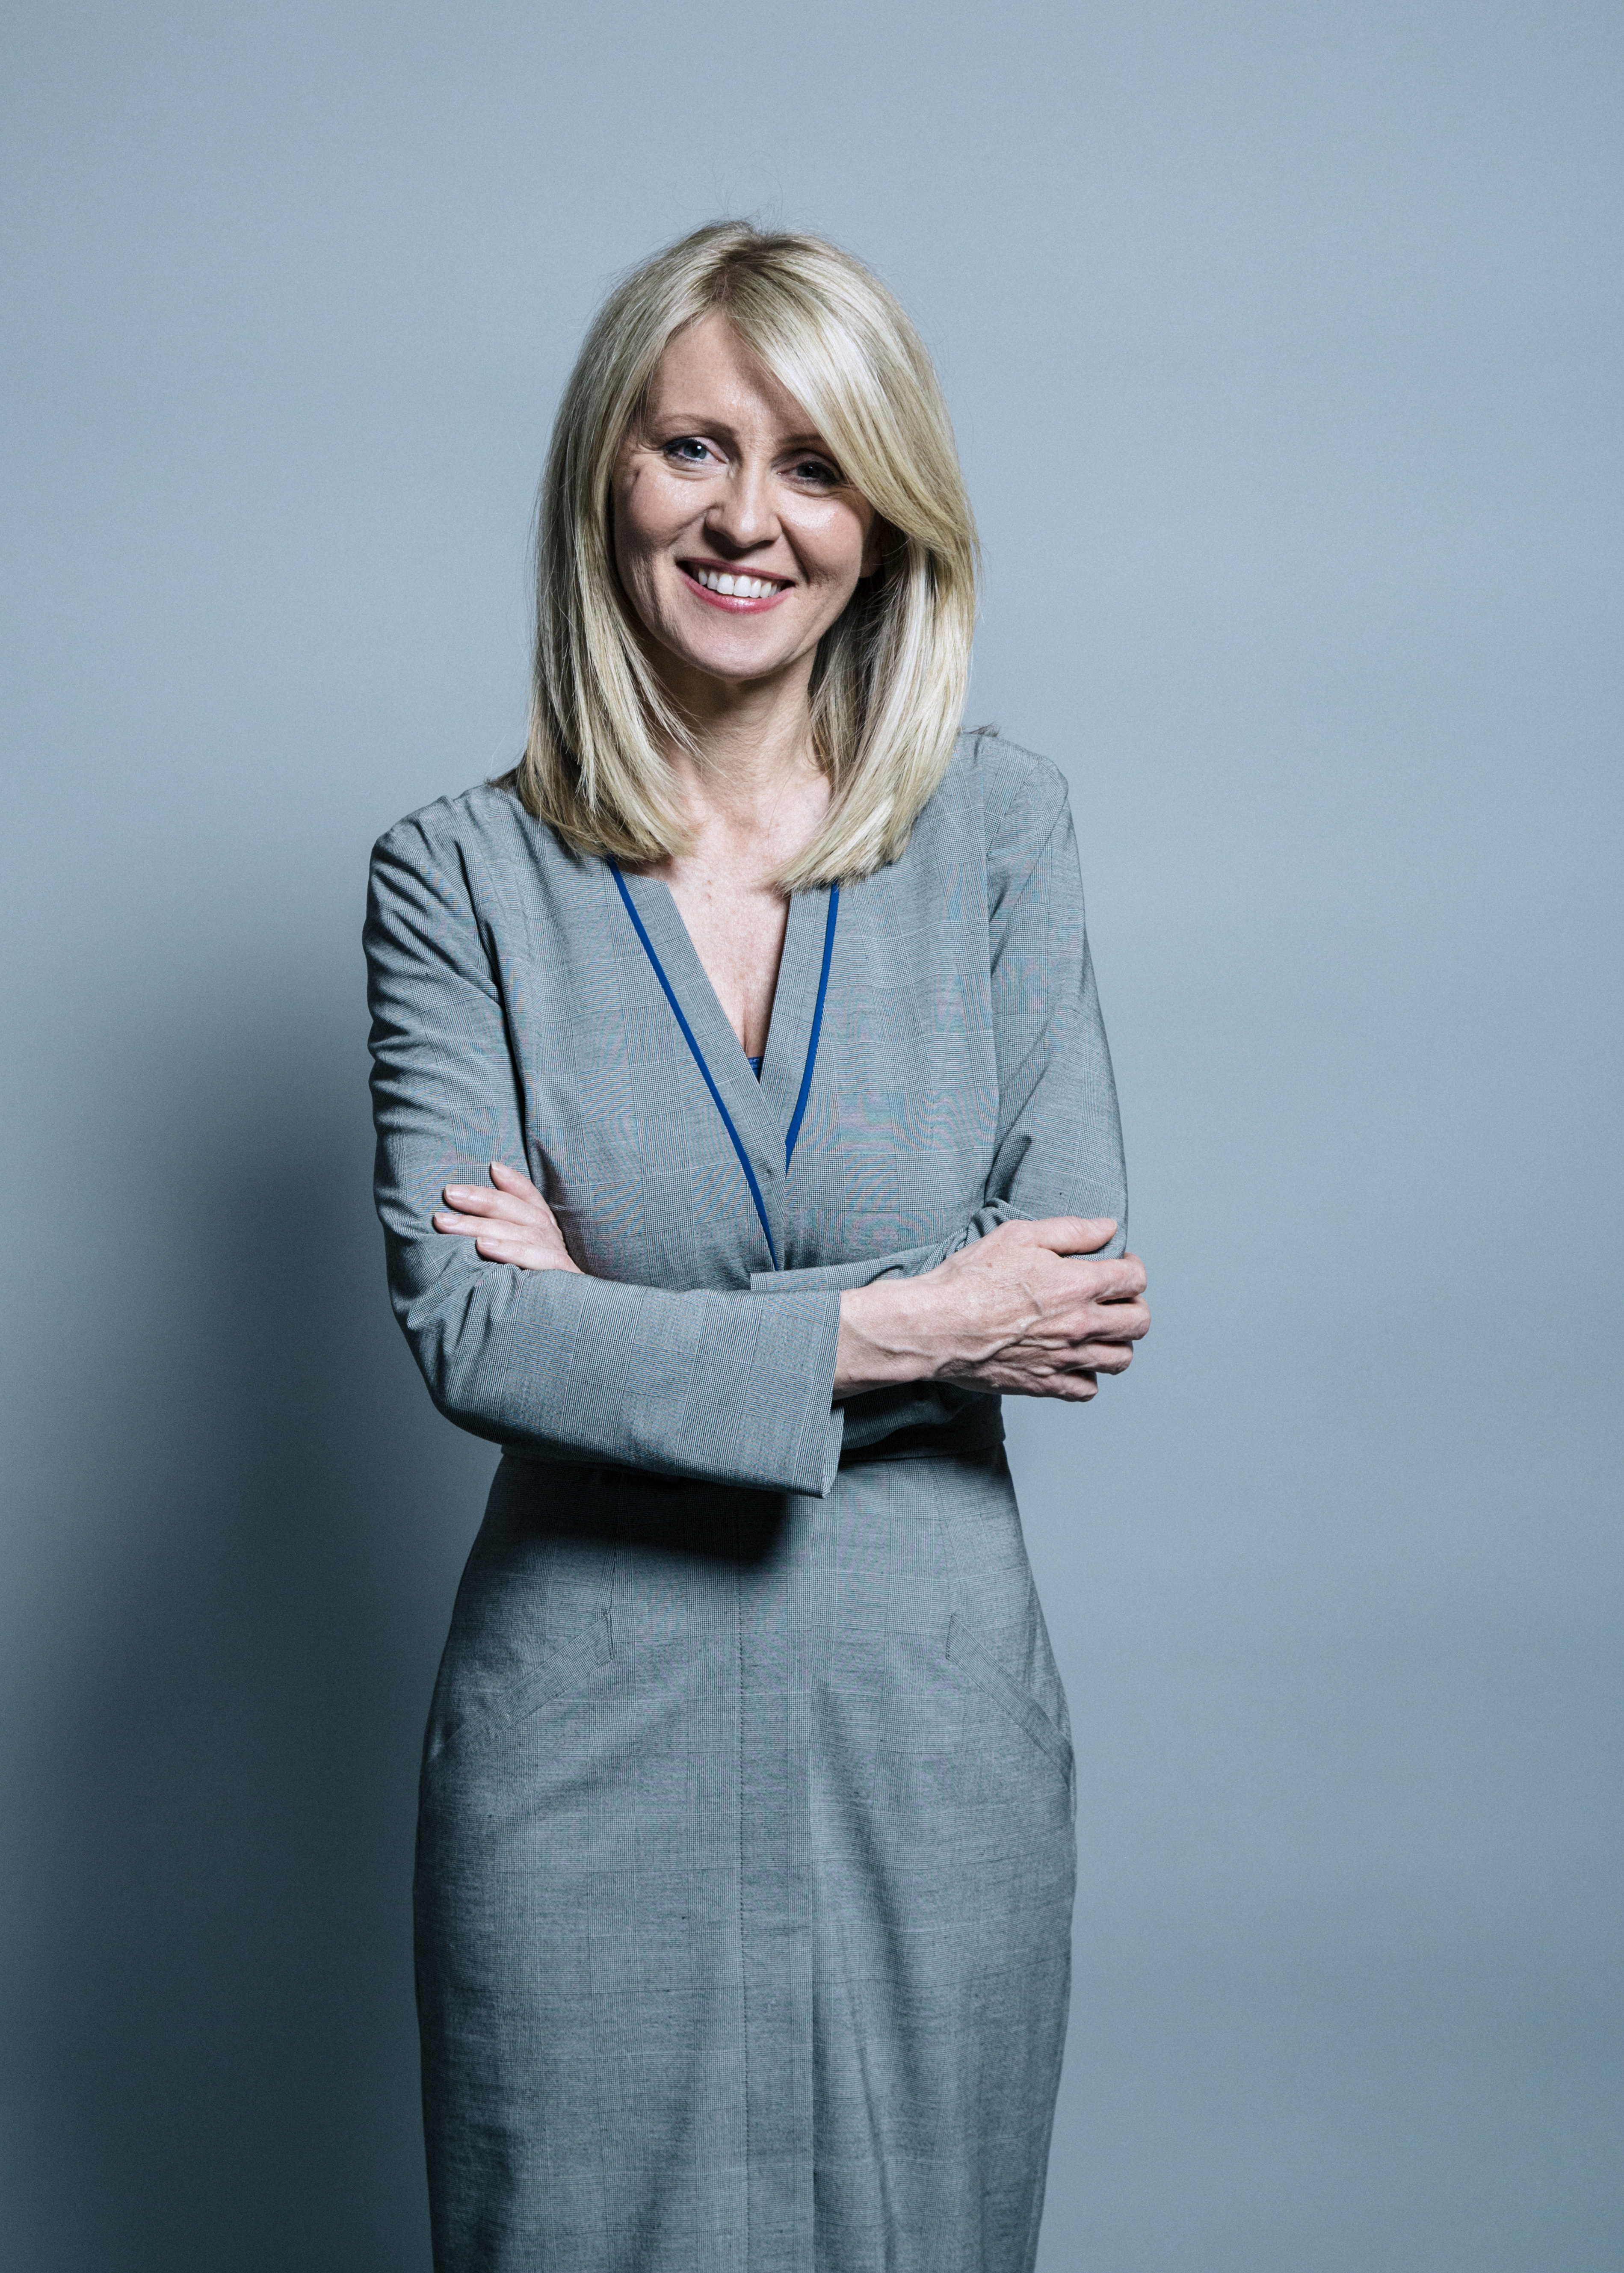 esther mcvey - photo #25